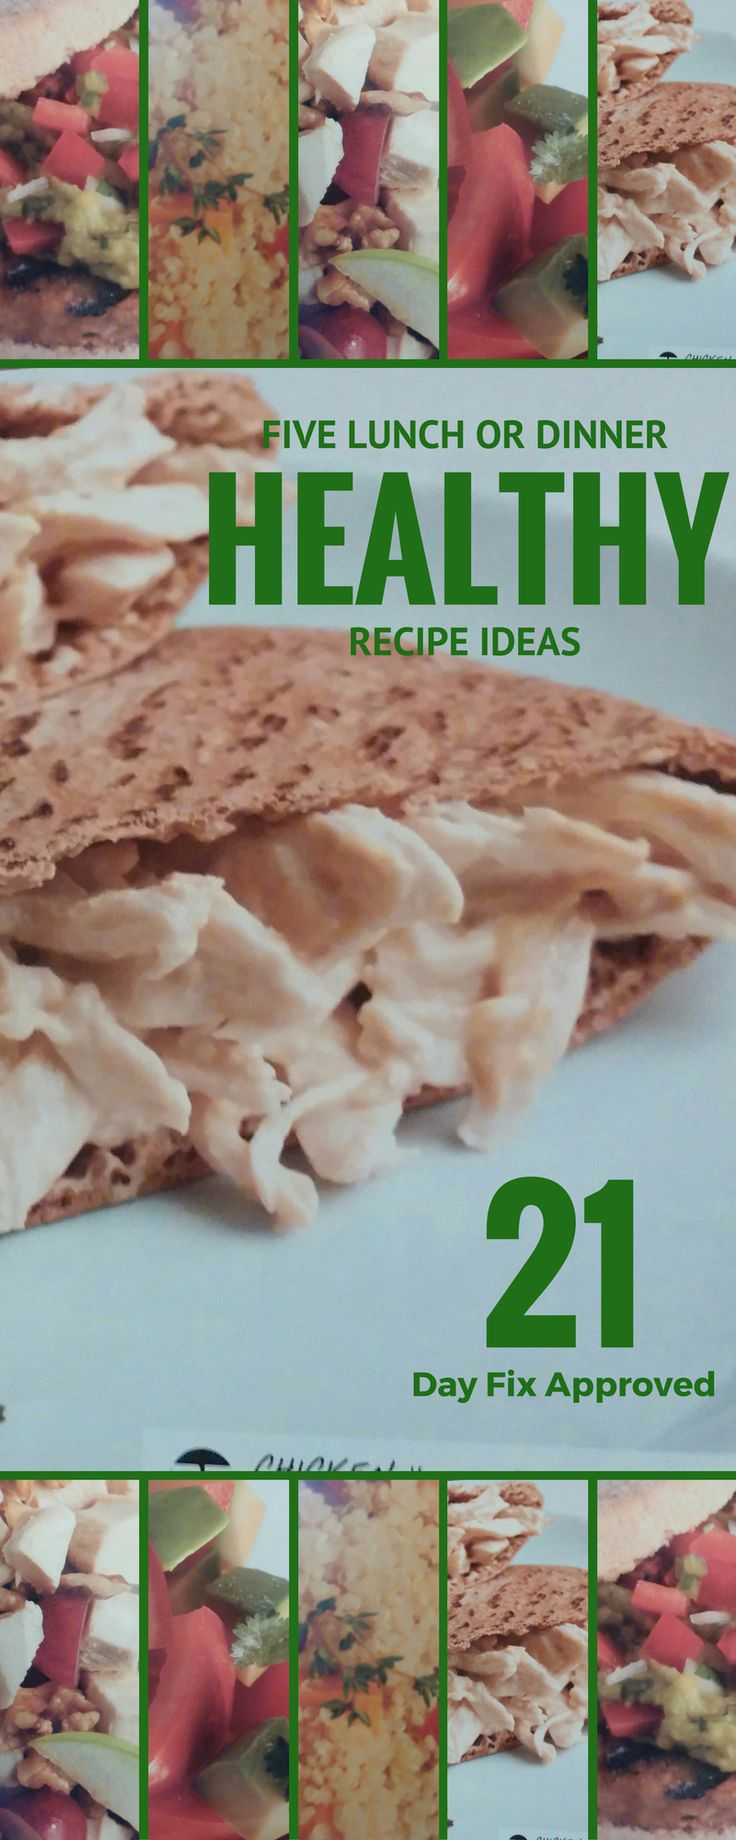 Get FIVE healthy lunch recipes - All 21 Day Fix Approved! Need help with your meal planning? This is a good place to start! Get your 5 day breakfast and lunch meal plan here! #21dayfix #recipe #healthyrecipe #mealplan #oatmeal #egg #breakfast #healthylifestyle #lunch